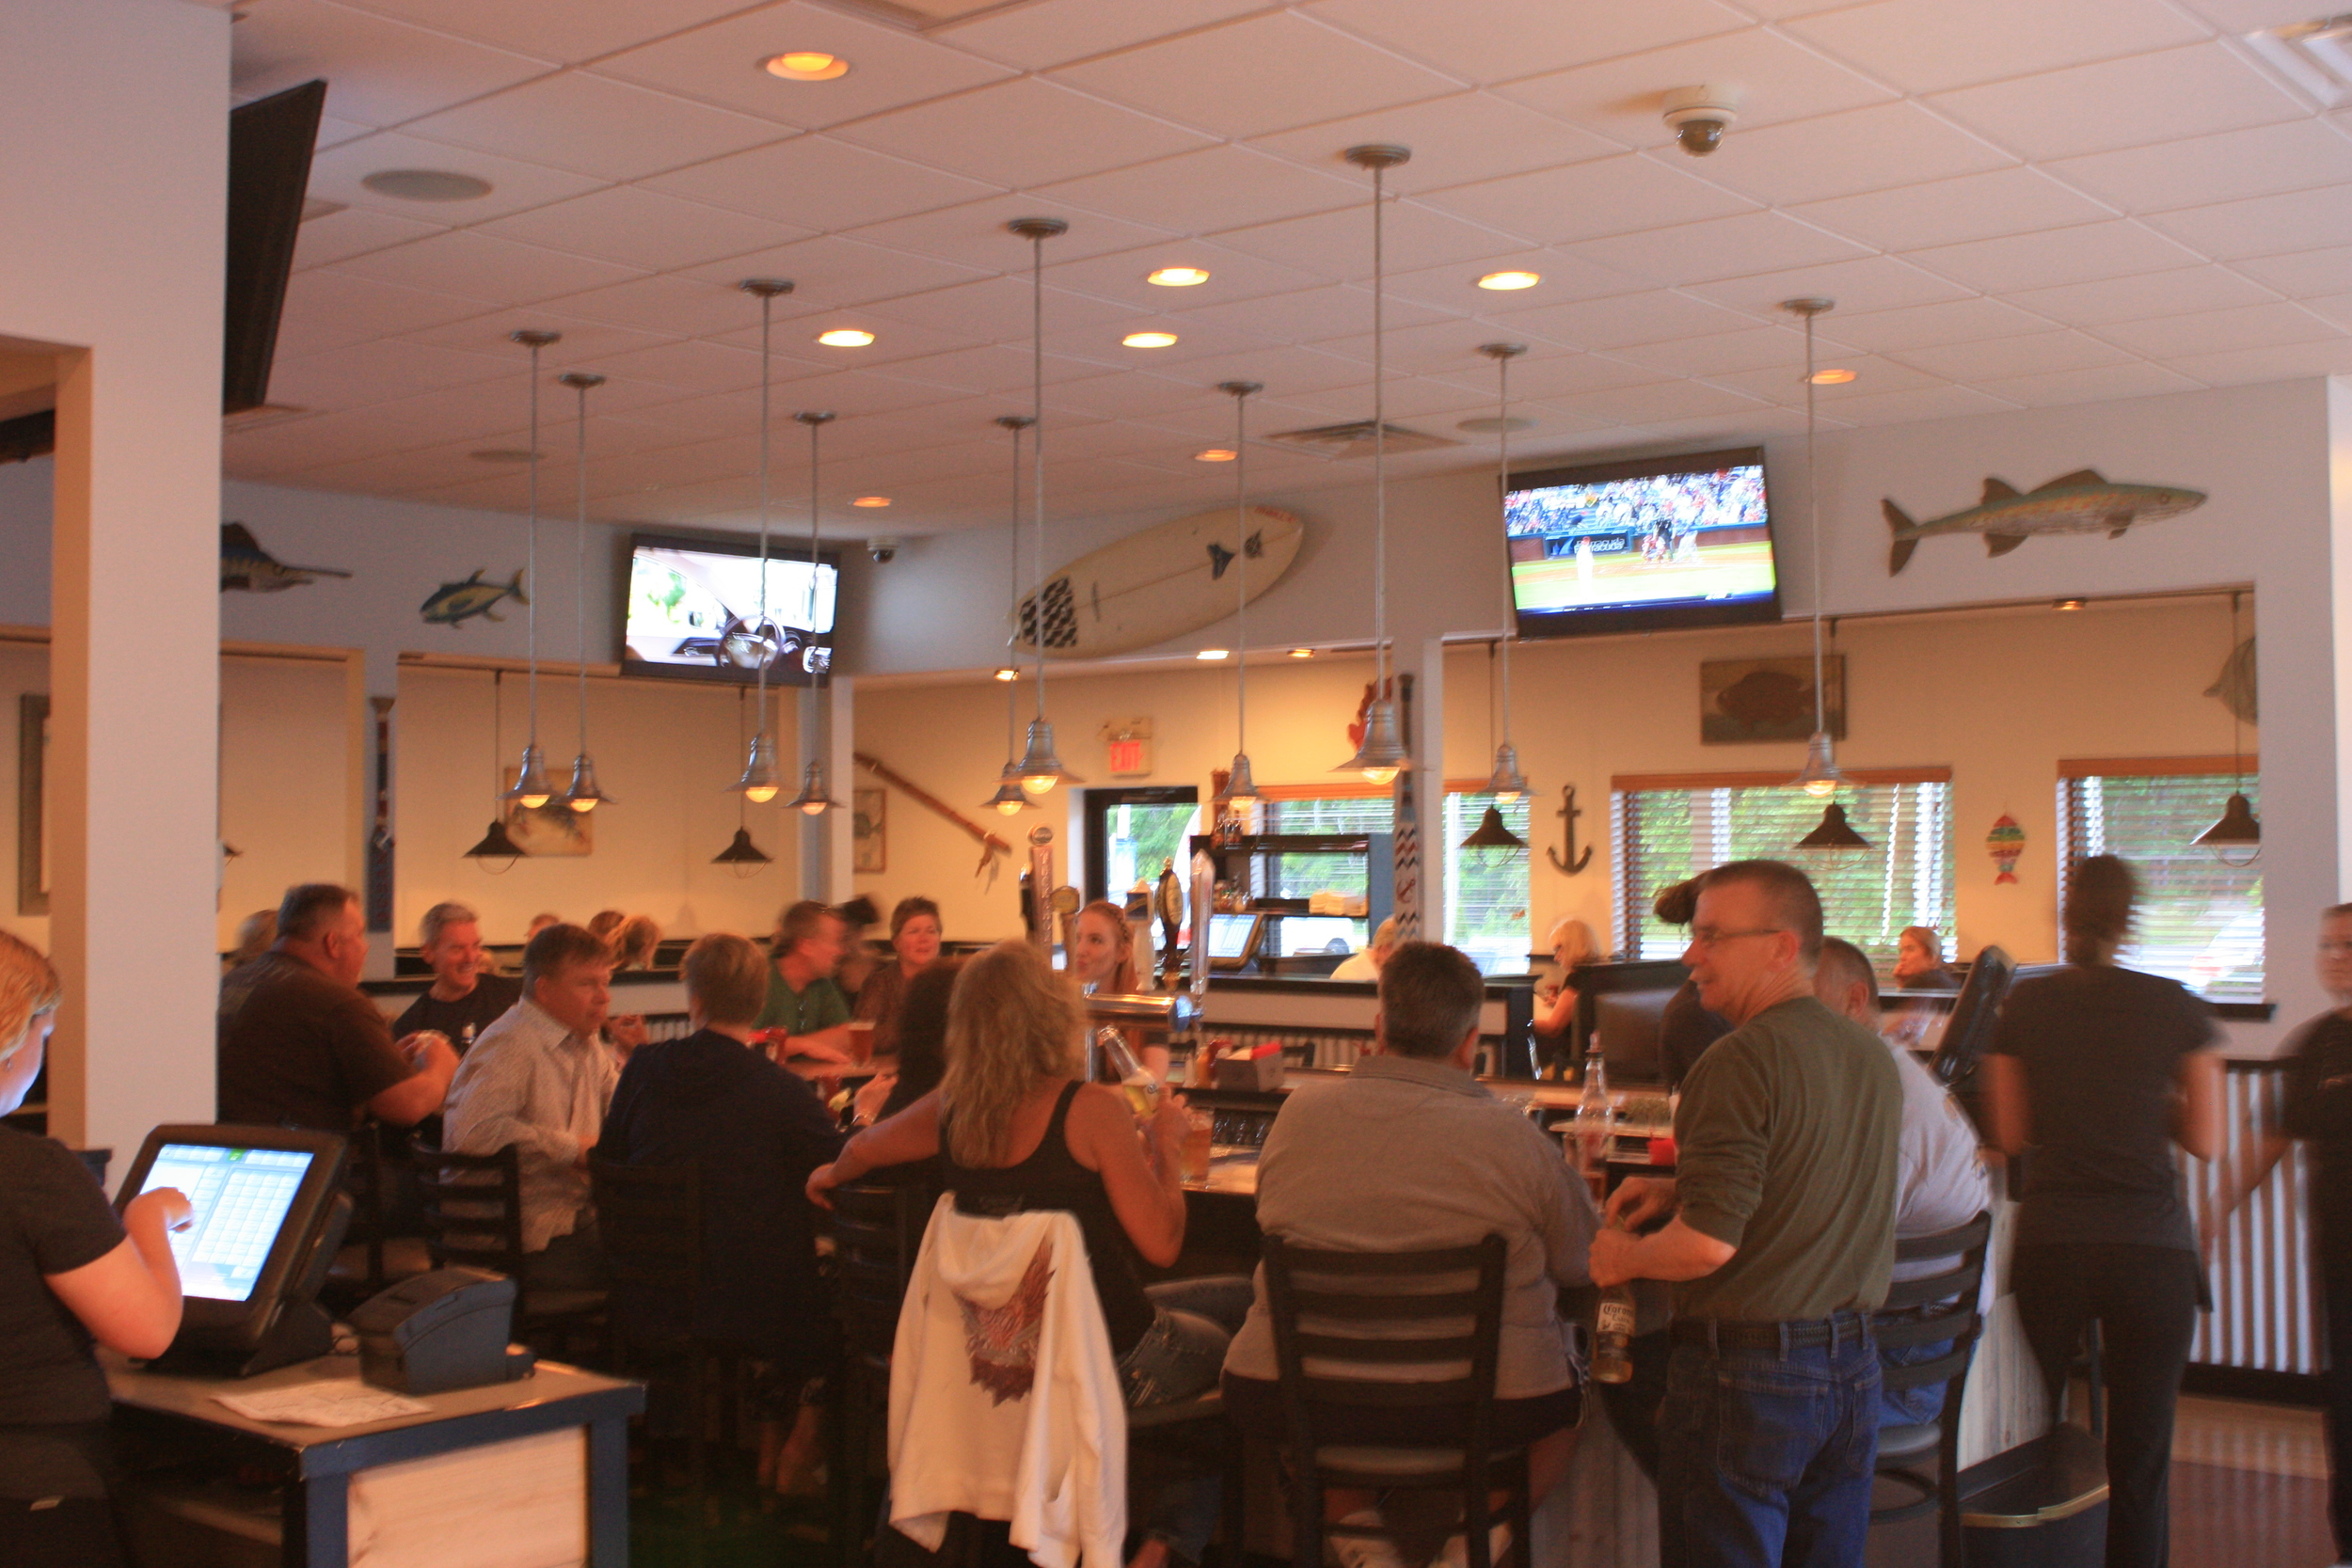 Our inside bar and cozy dining room. Come meet friends or find some new ones.